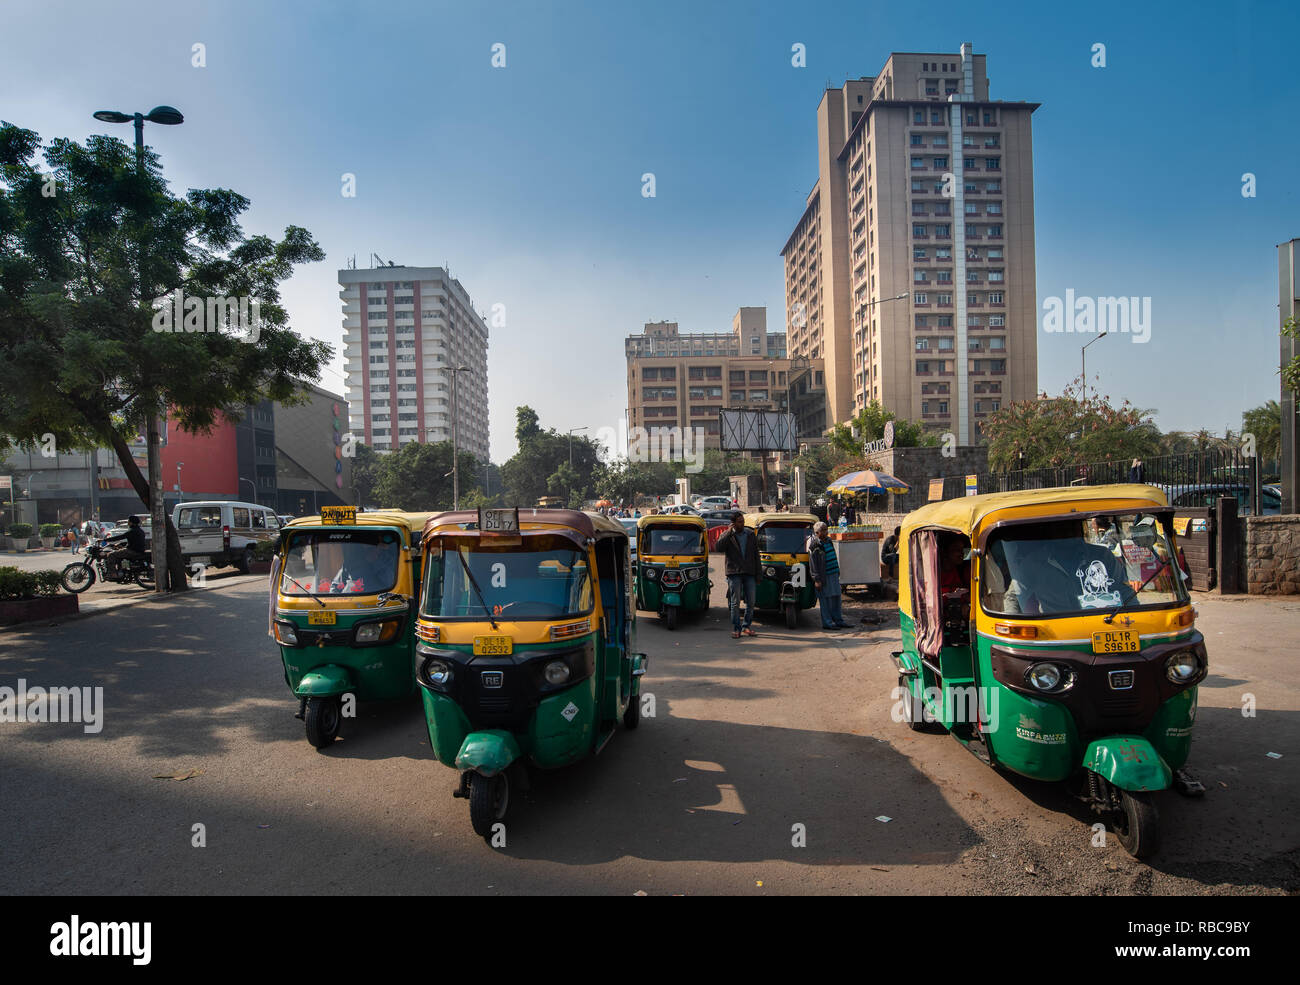 Auto rickshaws waiting for customers near Nehru Place Metro Station with Eros tower in the background, near Satyam Cinema. New Delhi, India Stock Photo